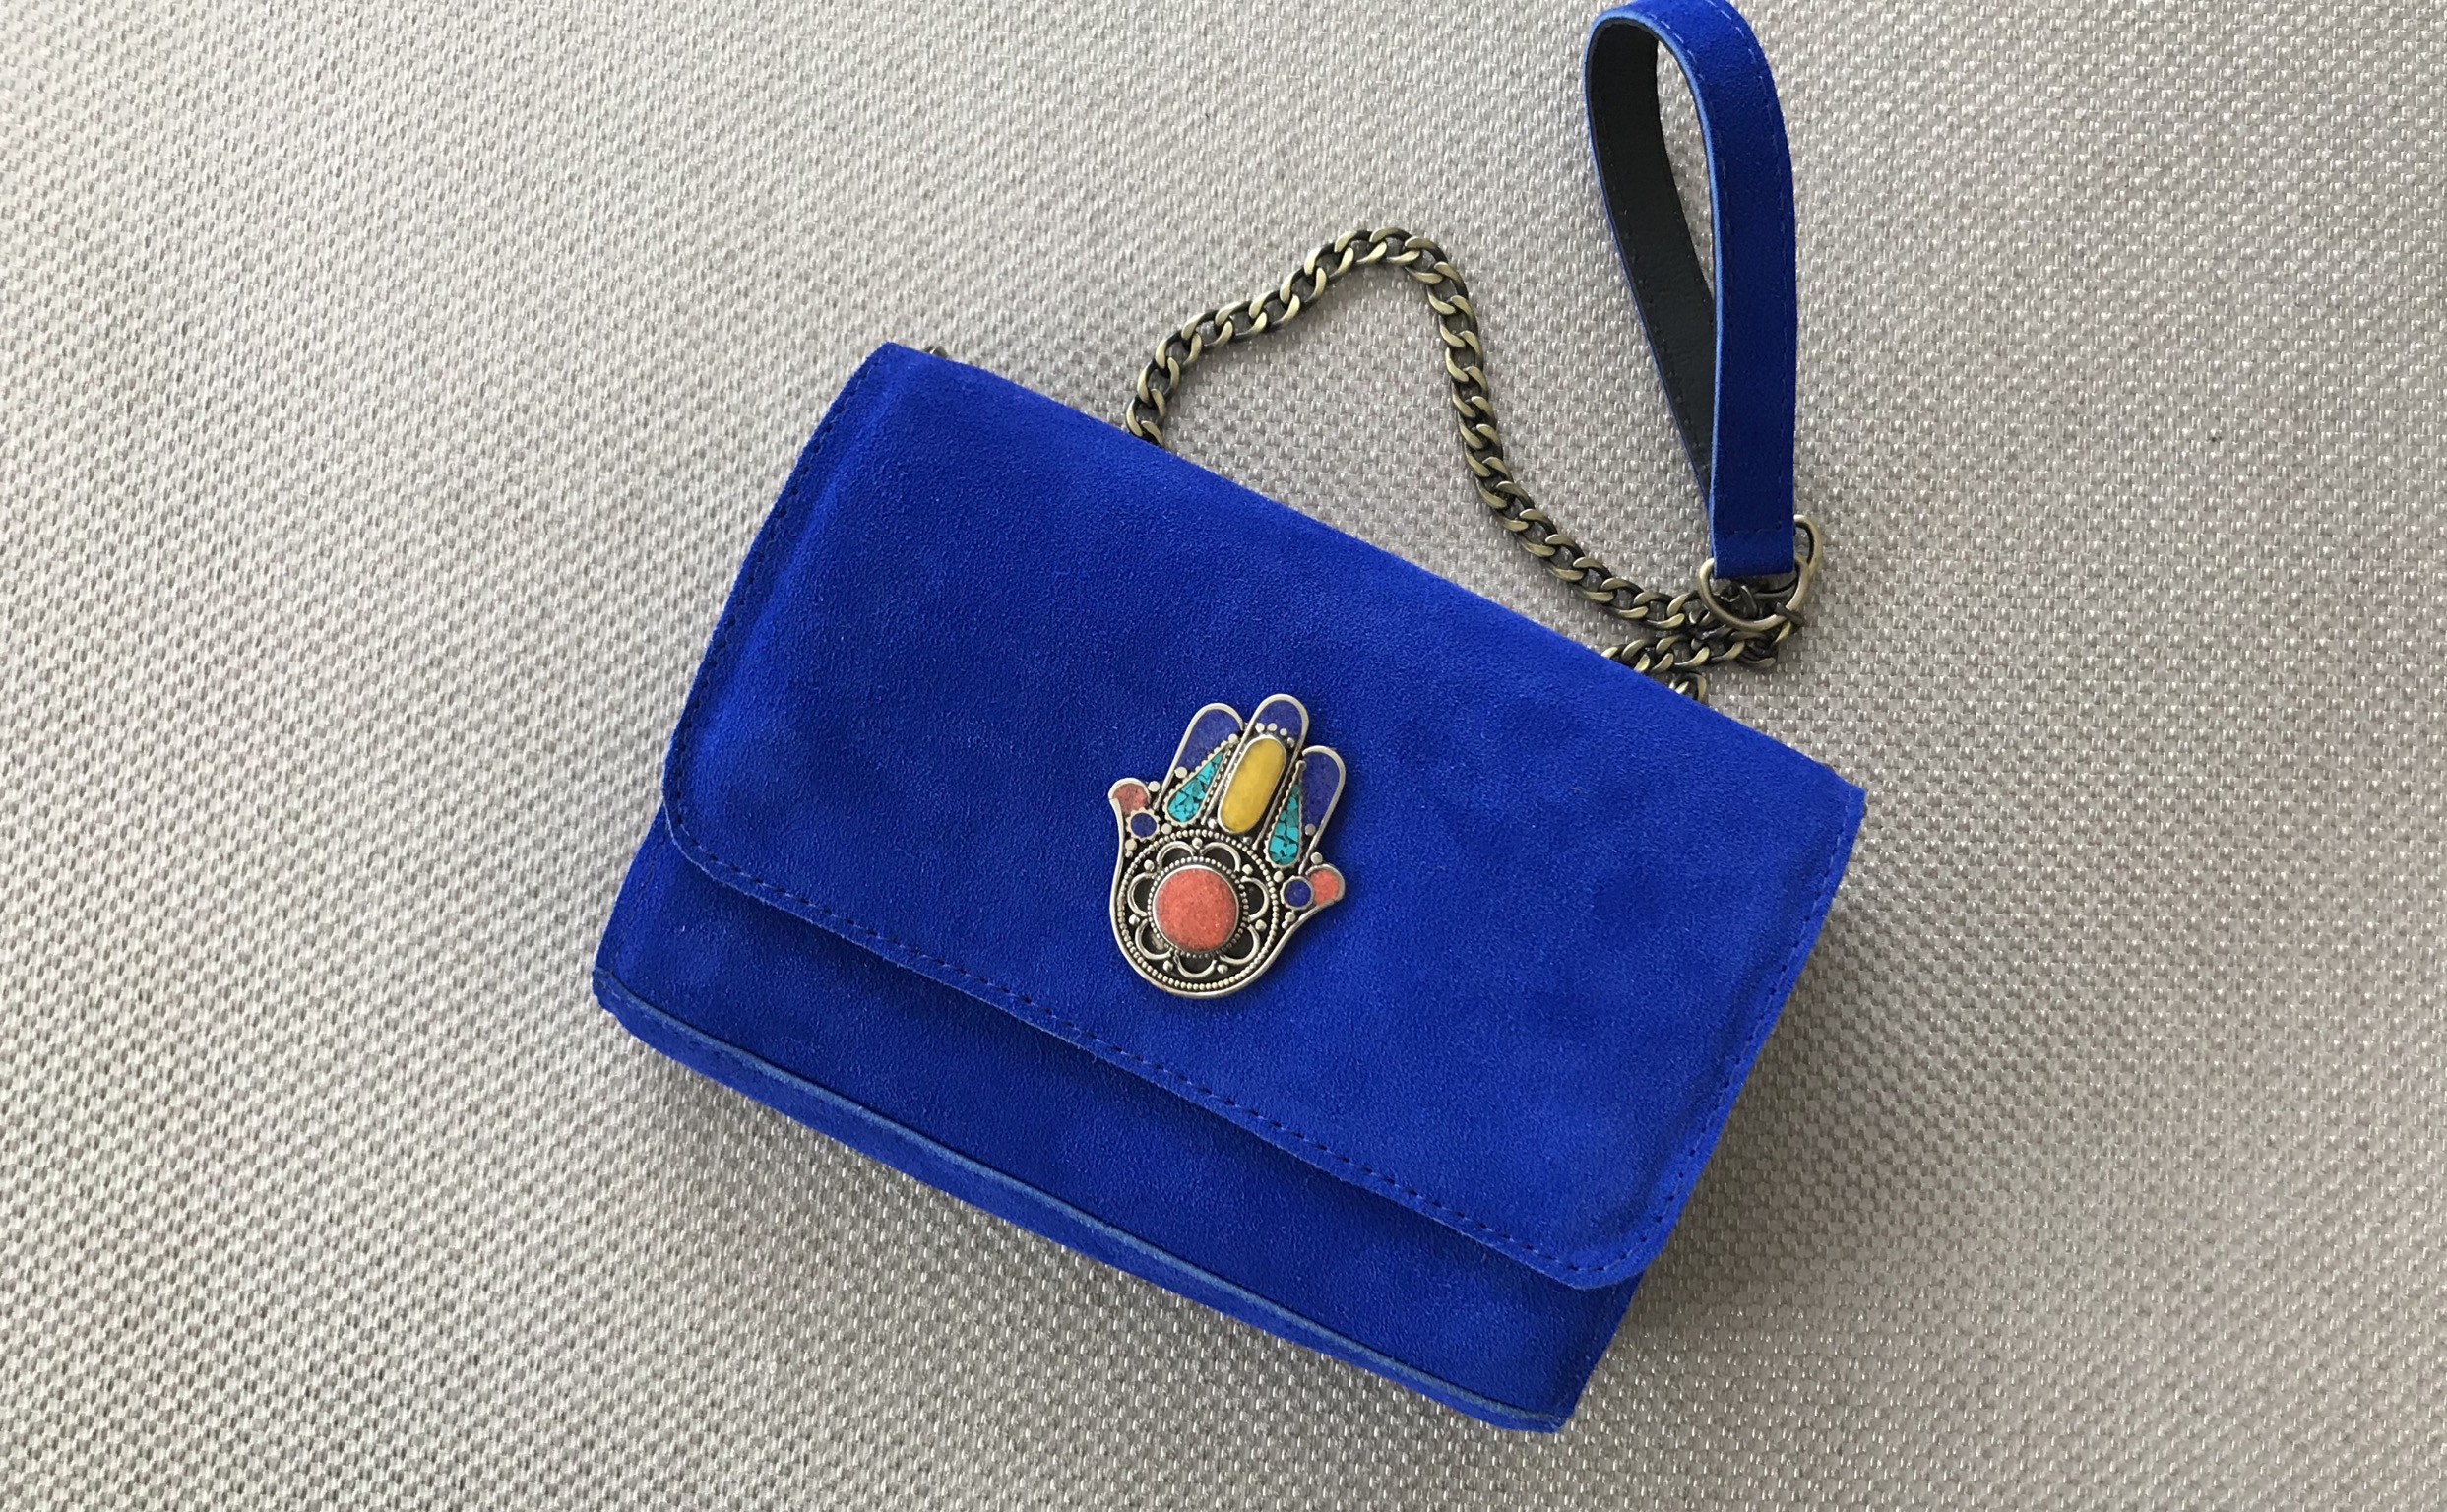 Jewelry bag suedeleather blue majorelle